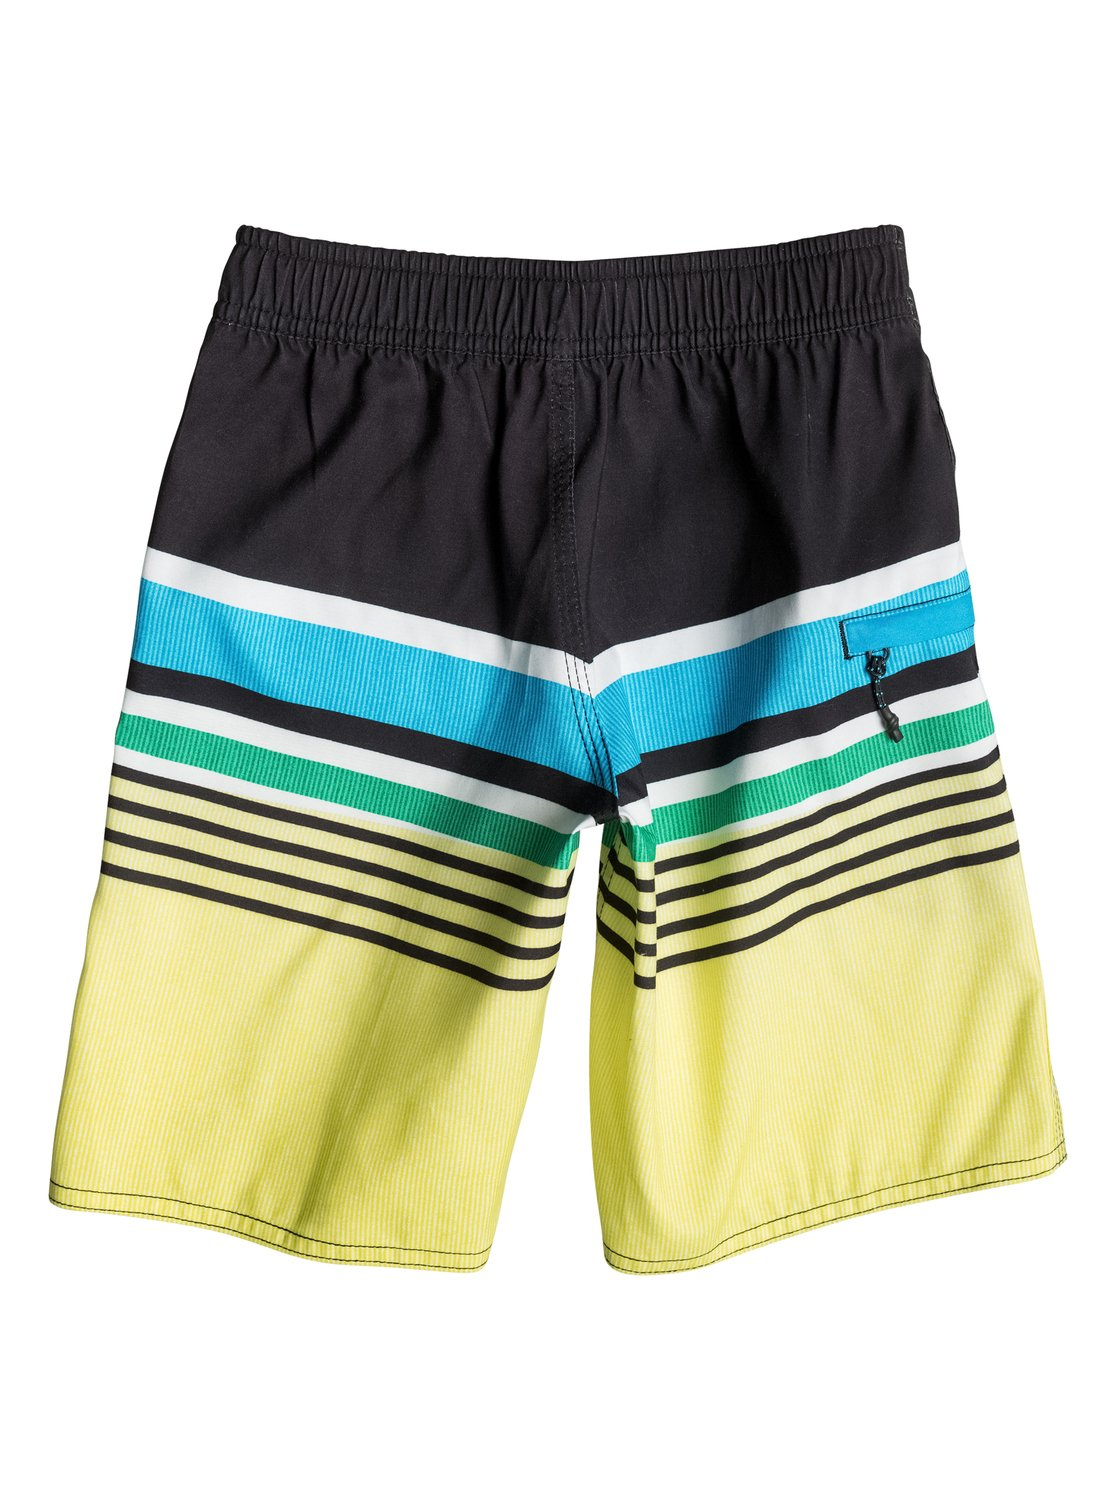 Shop the best selection of boys' board shorts at membhobbdownload-zy.ga, where you'll find premium outdoor gear and clothing and experts to guide you through selection.